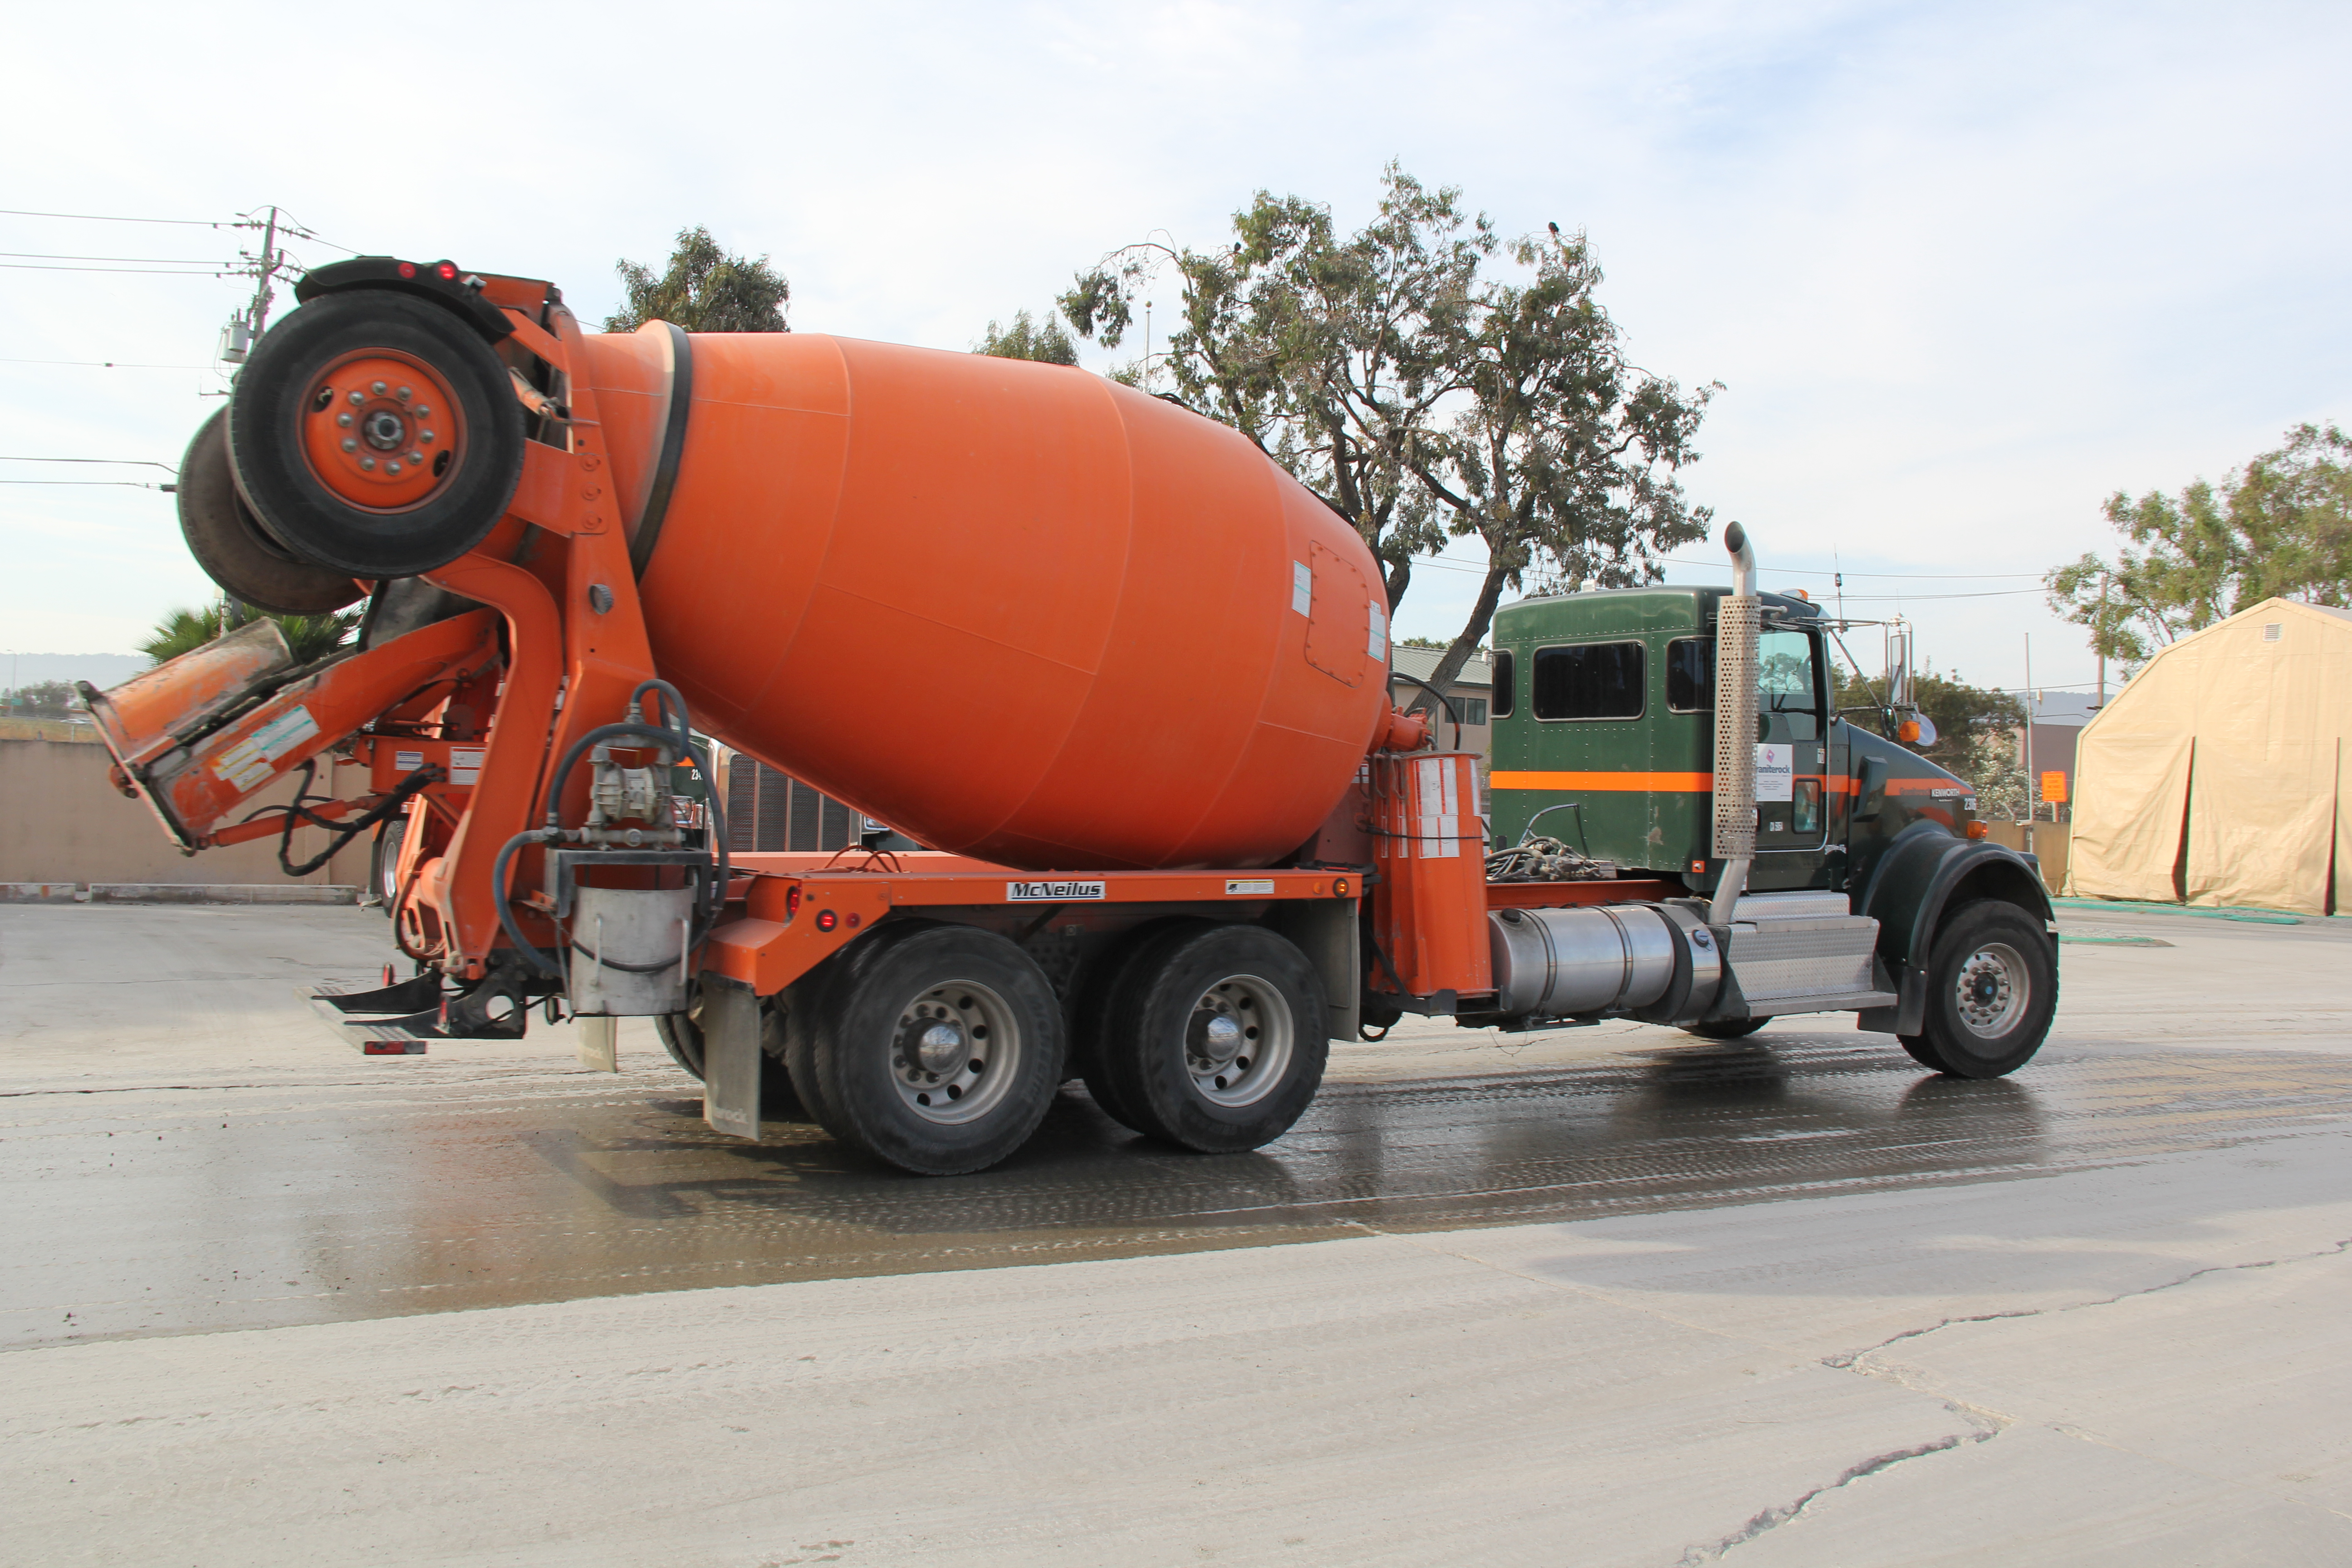 Sacramento's surprise for public works ready-mix drivers